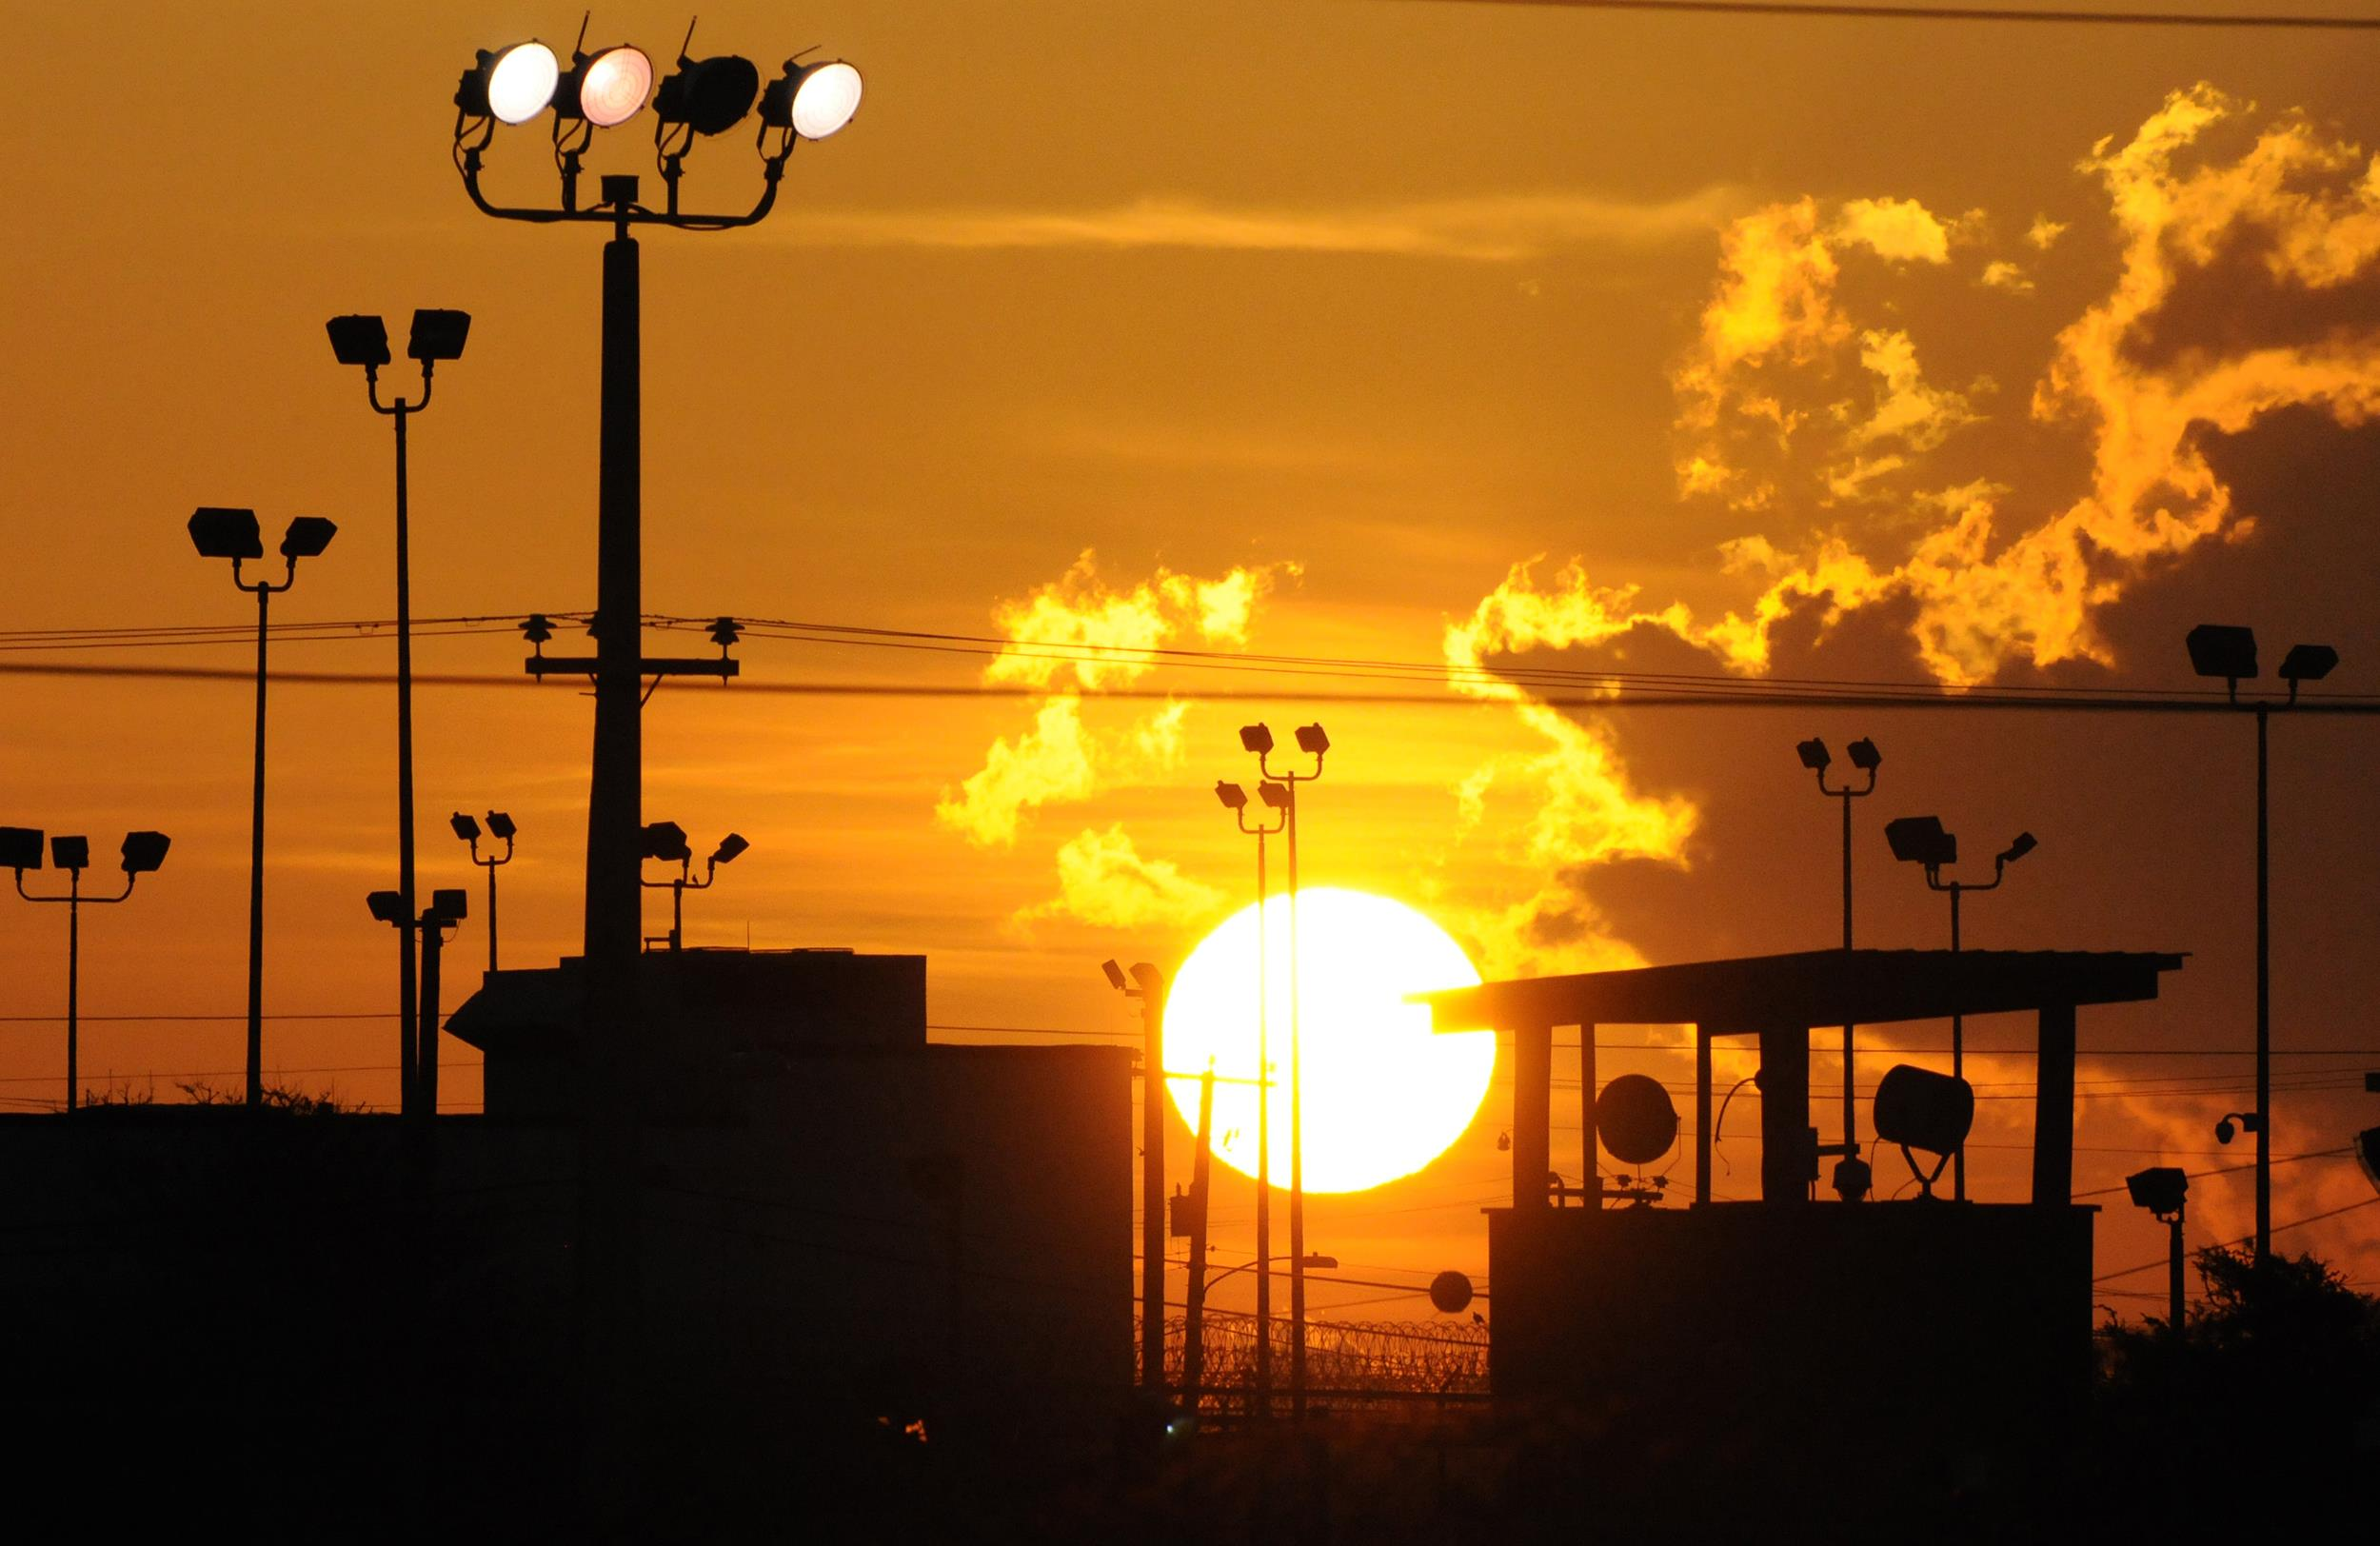 Image: towers overlooking a U.S. detention facility are silhouetted against a morning sunrise at Guantanamo Bay U.S. Naval Base, Cuba, in 2012